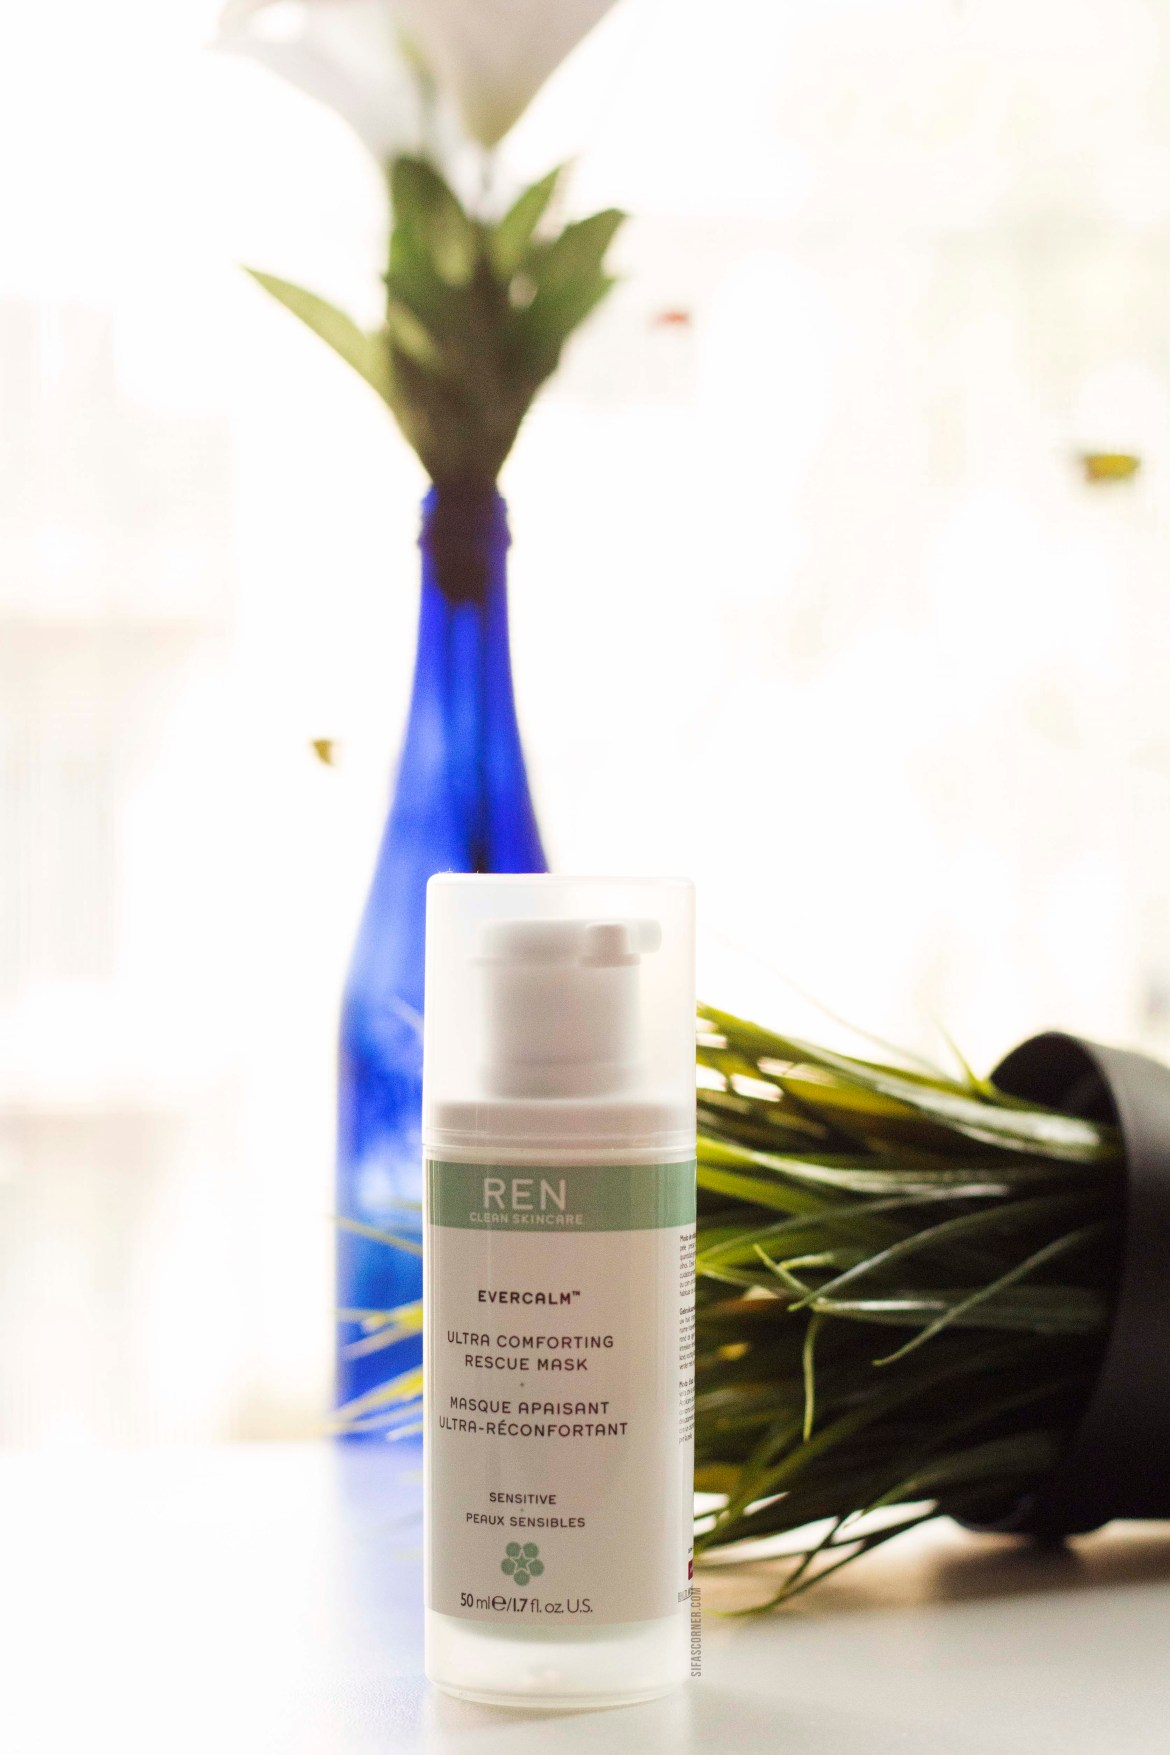 Winter to Spring Skincare- 4 Face Masks for Smoother Clear Skin-REN CLEAN SKINCARE Evercalm™ Ultra Comforting Rescue Mask: